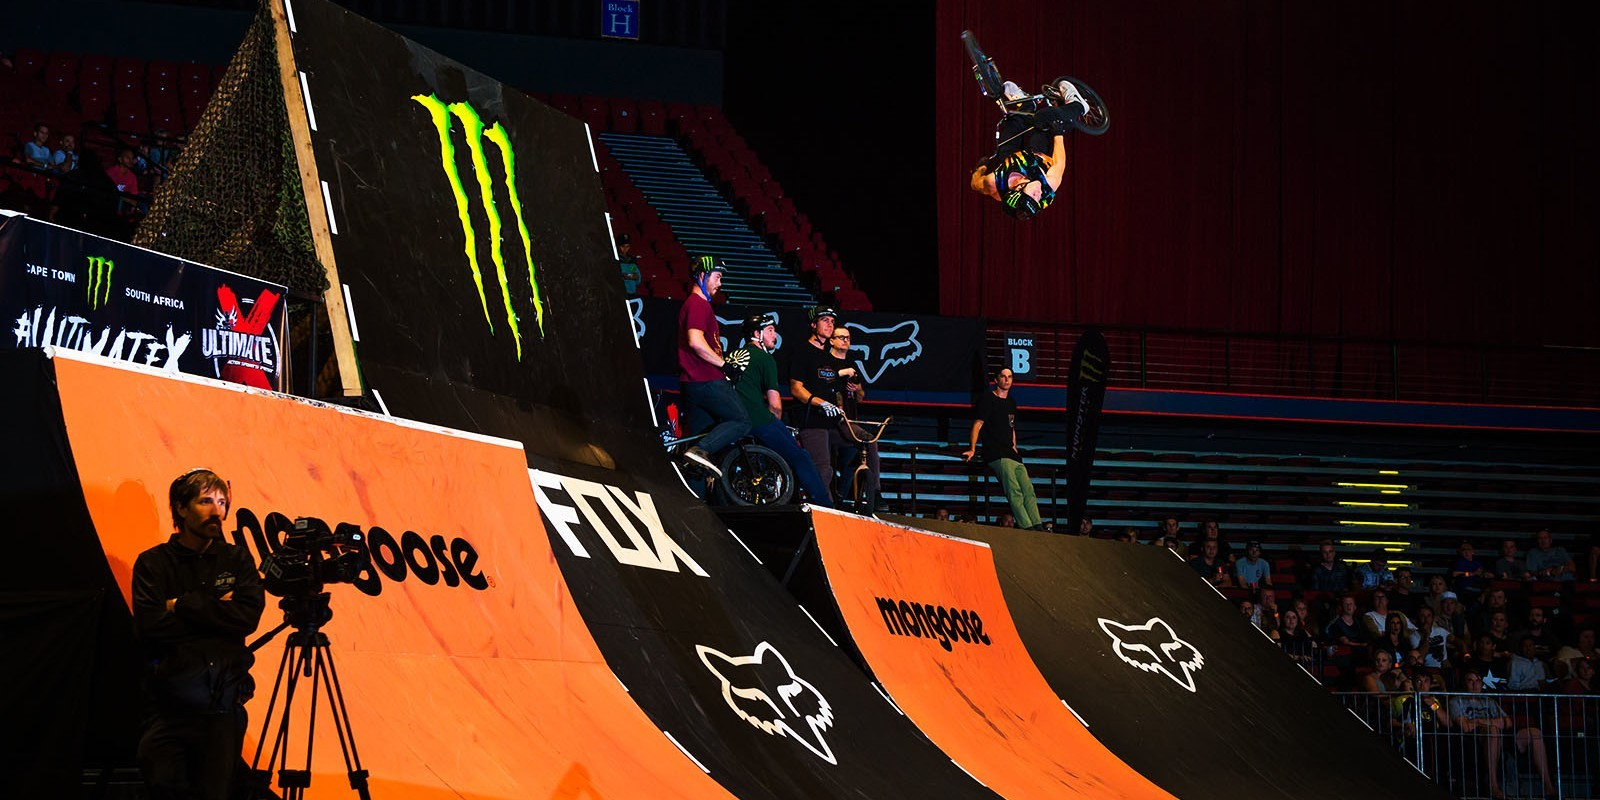 Ultimate X Action Sports Fest - South Africa - 2017